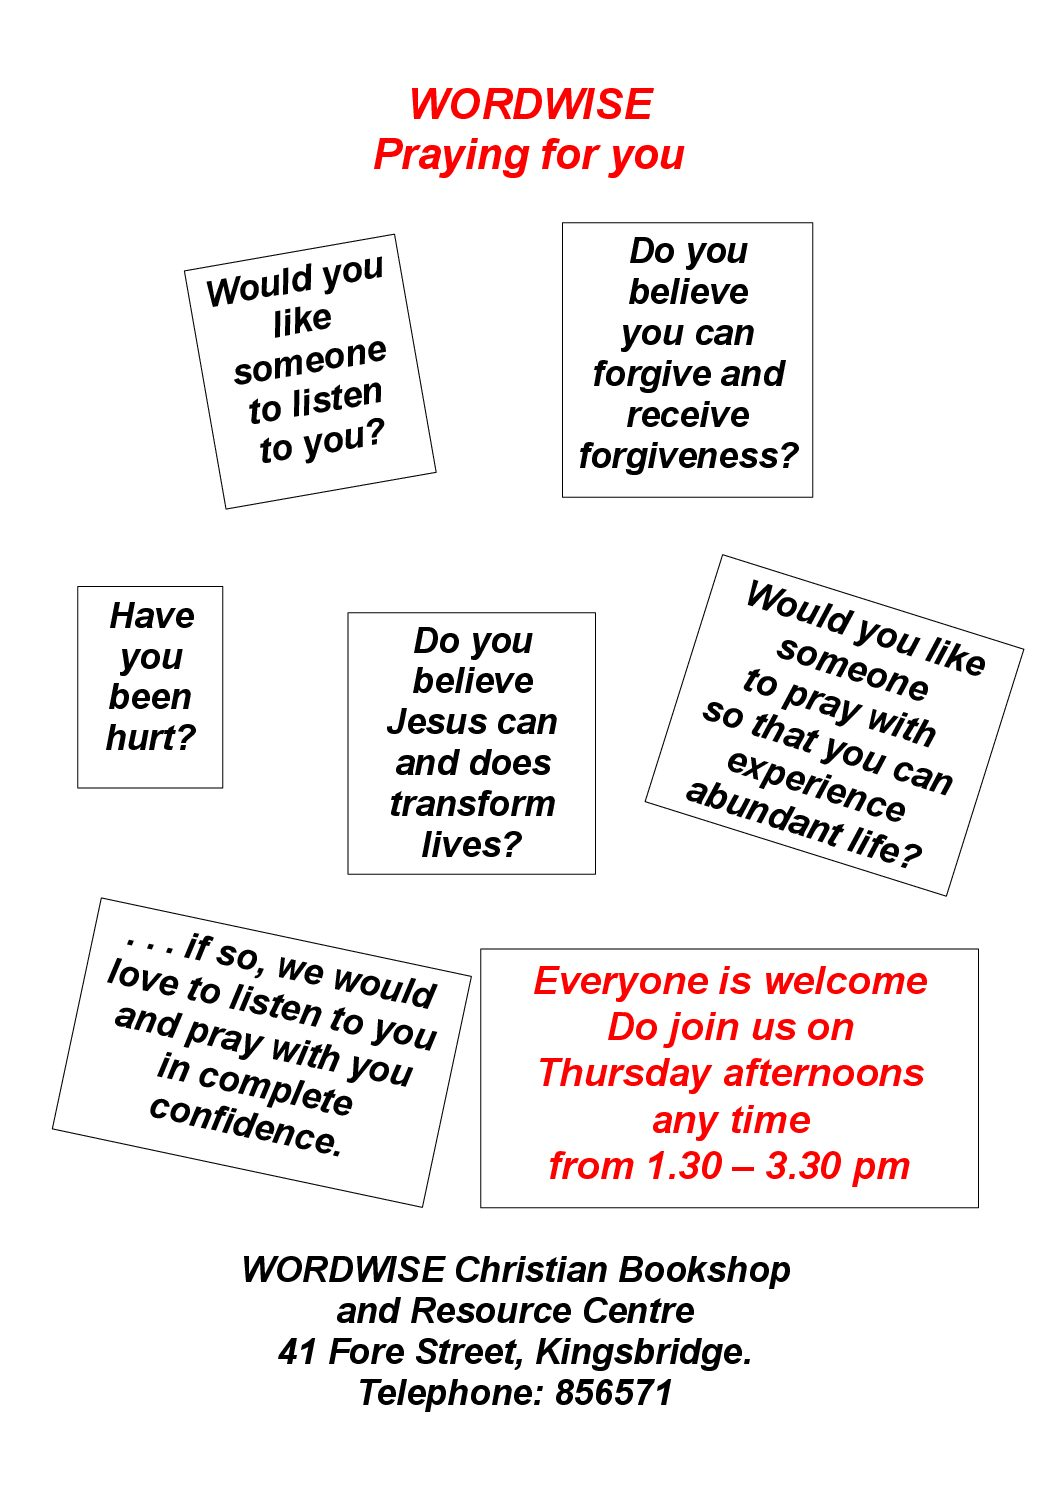 Prayer Ministry available